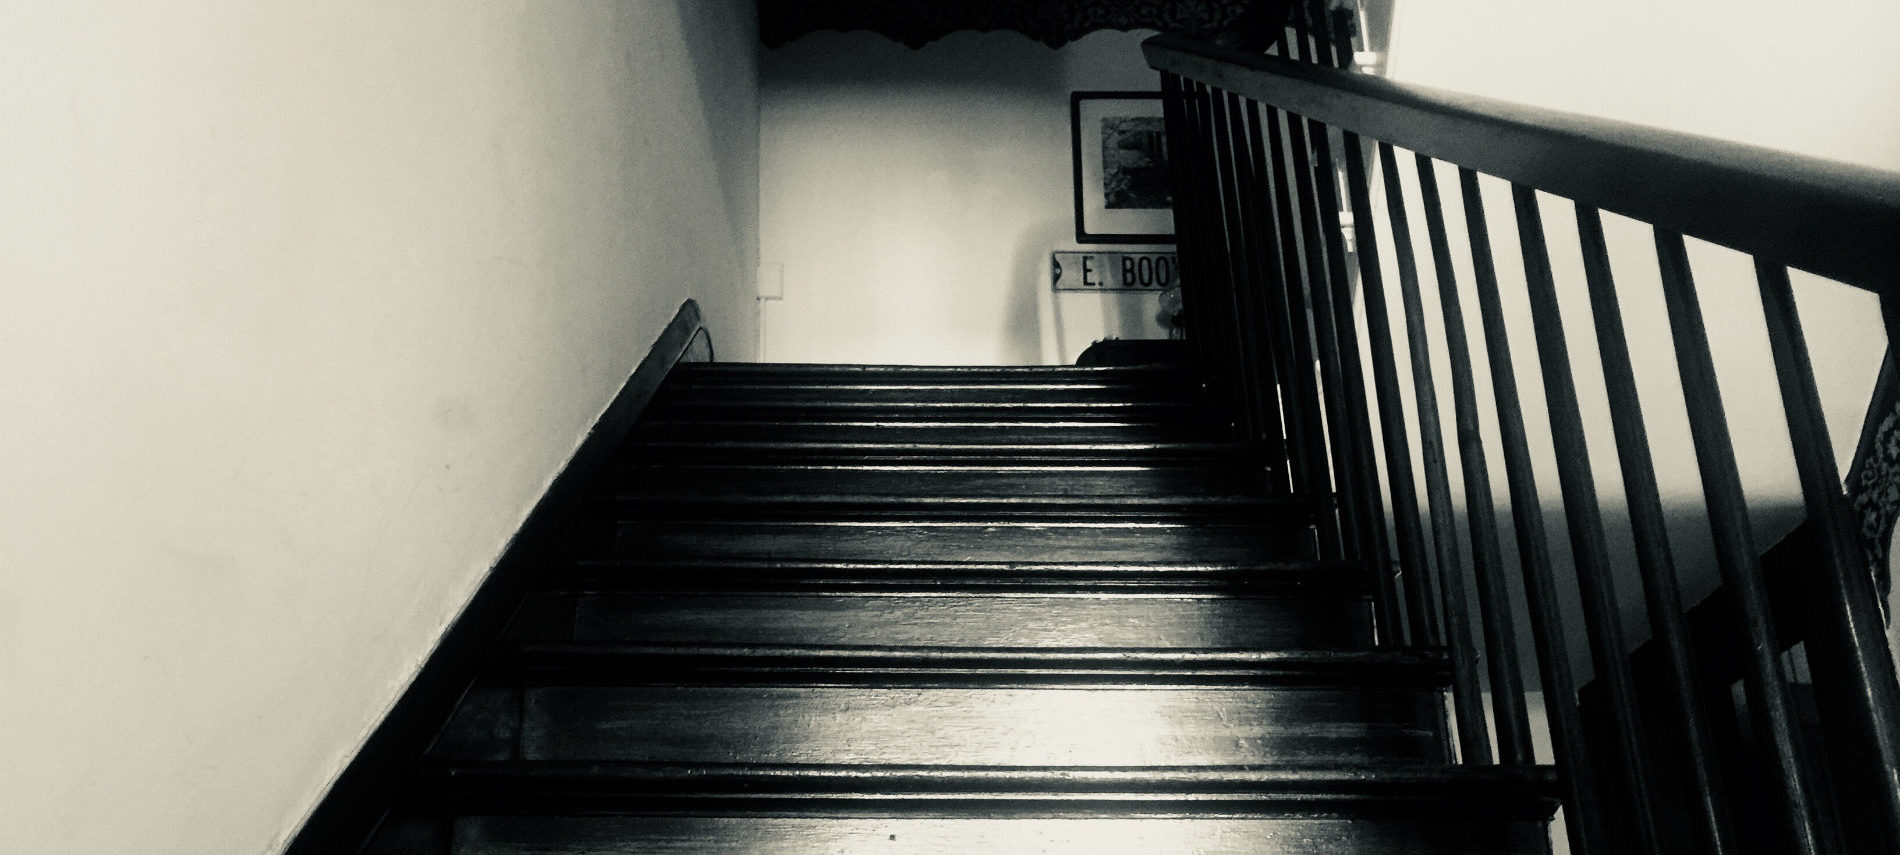 A spooky photo in black and white of the stairs at the OCBB